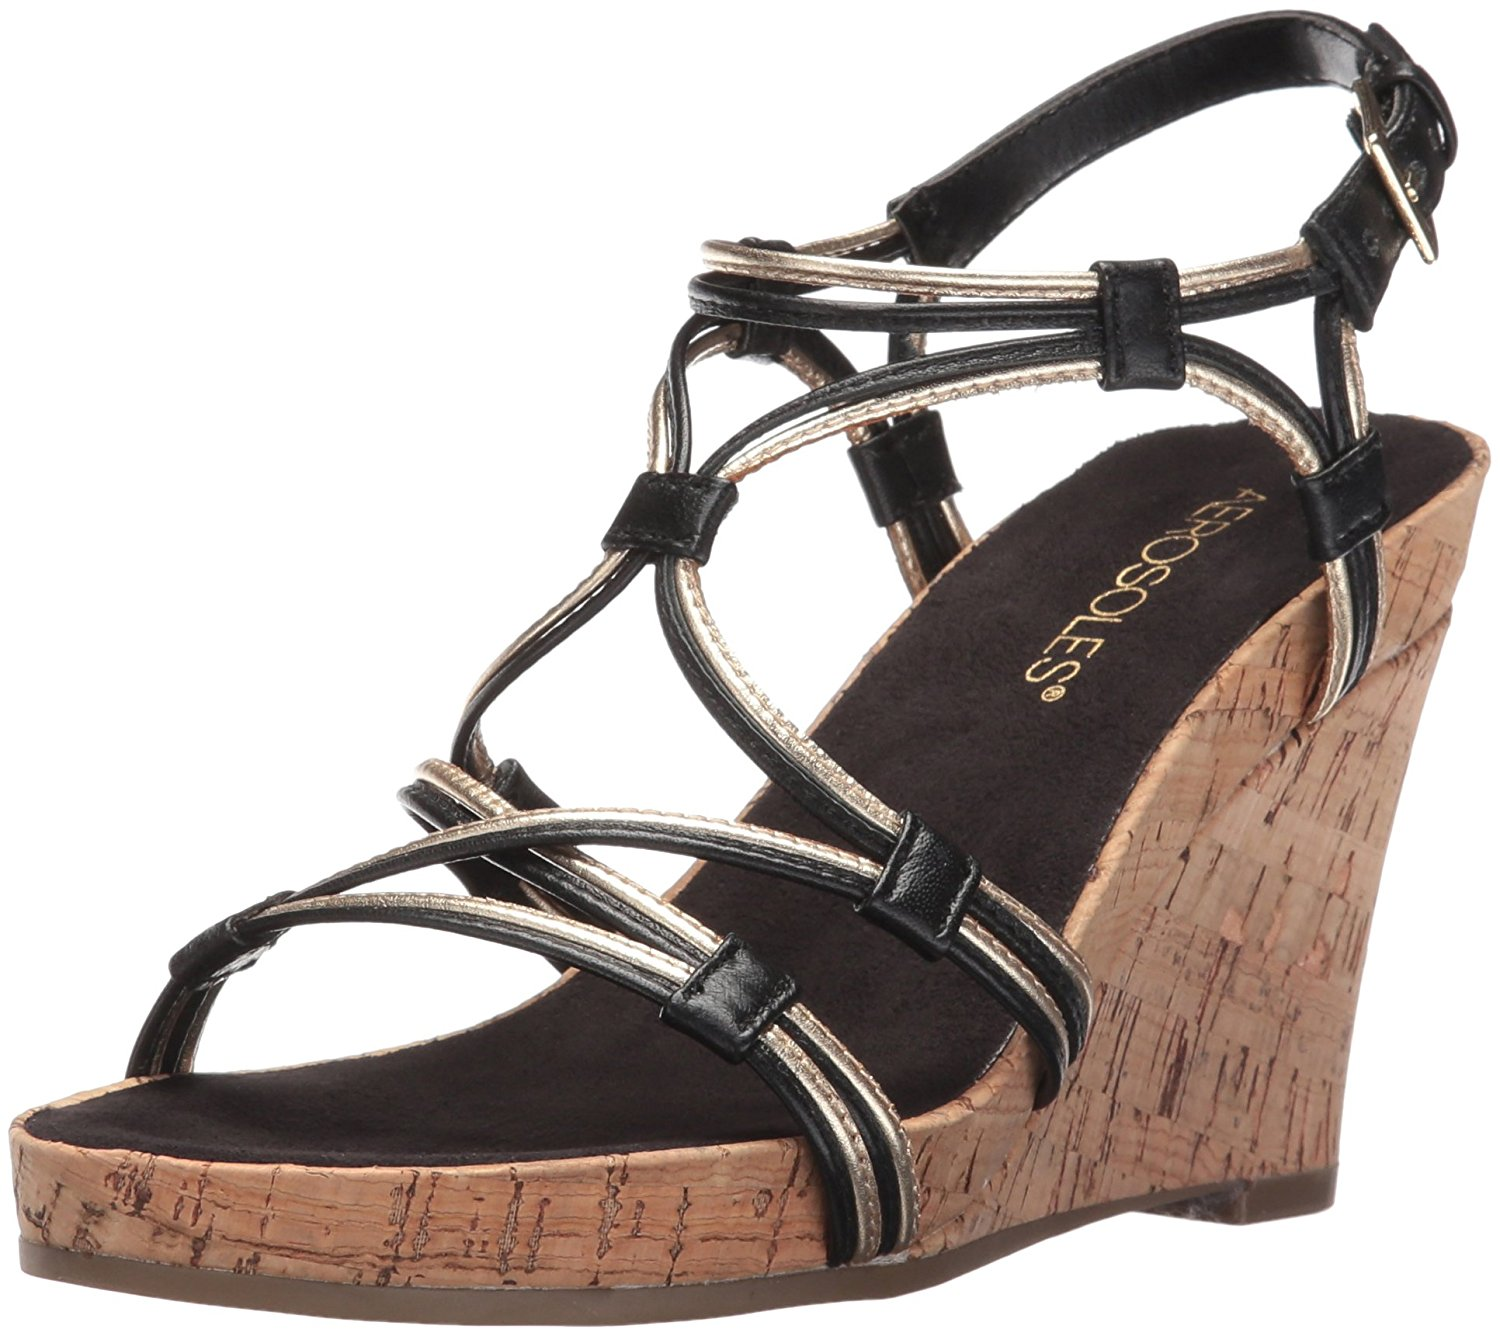 Aerosoles Womens Real Plush Leather Open Toe Casual Platform Sandals by Aerosoles